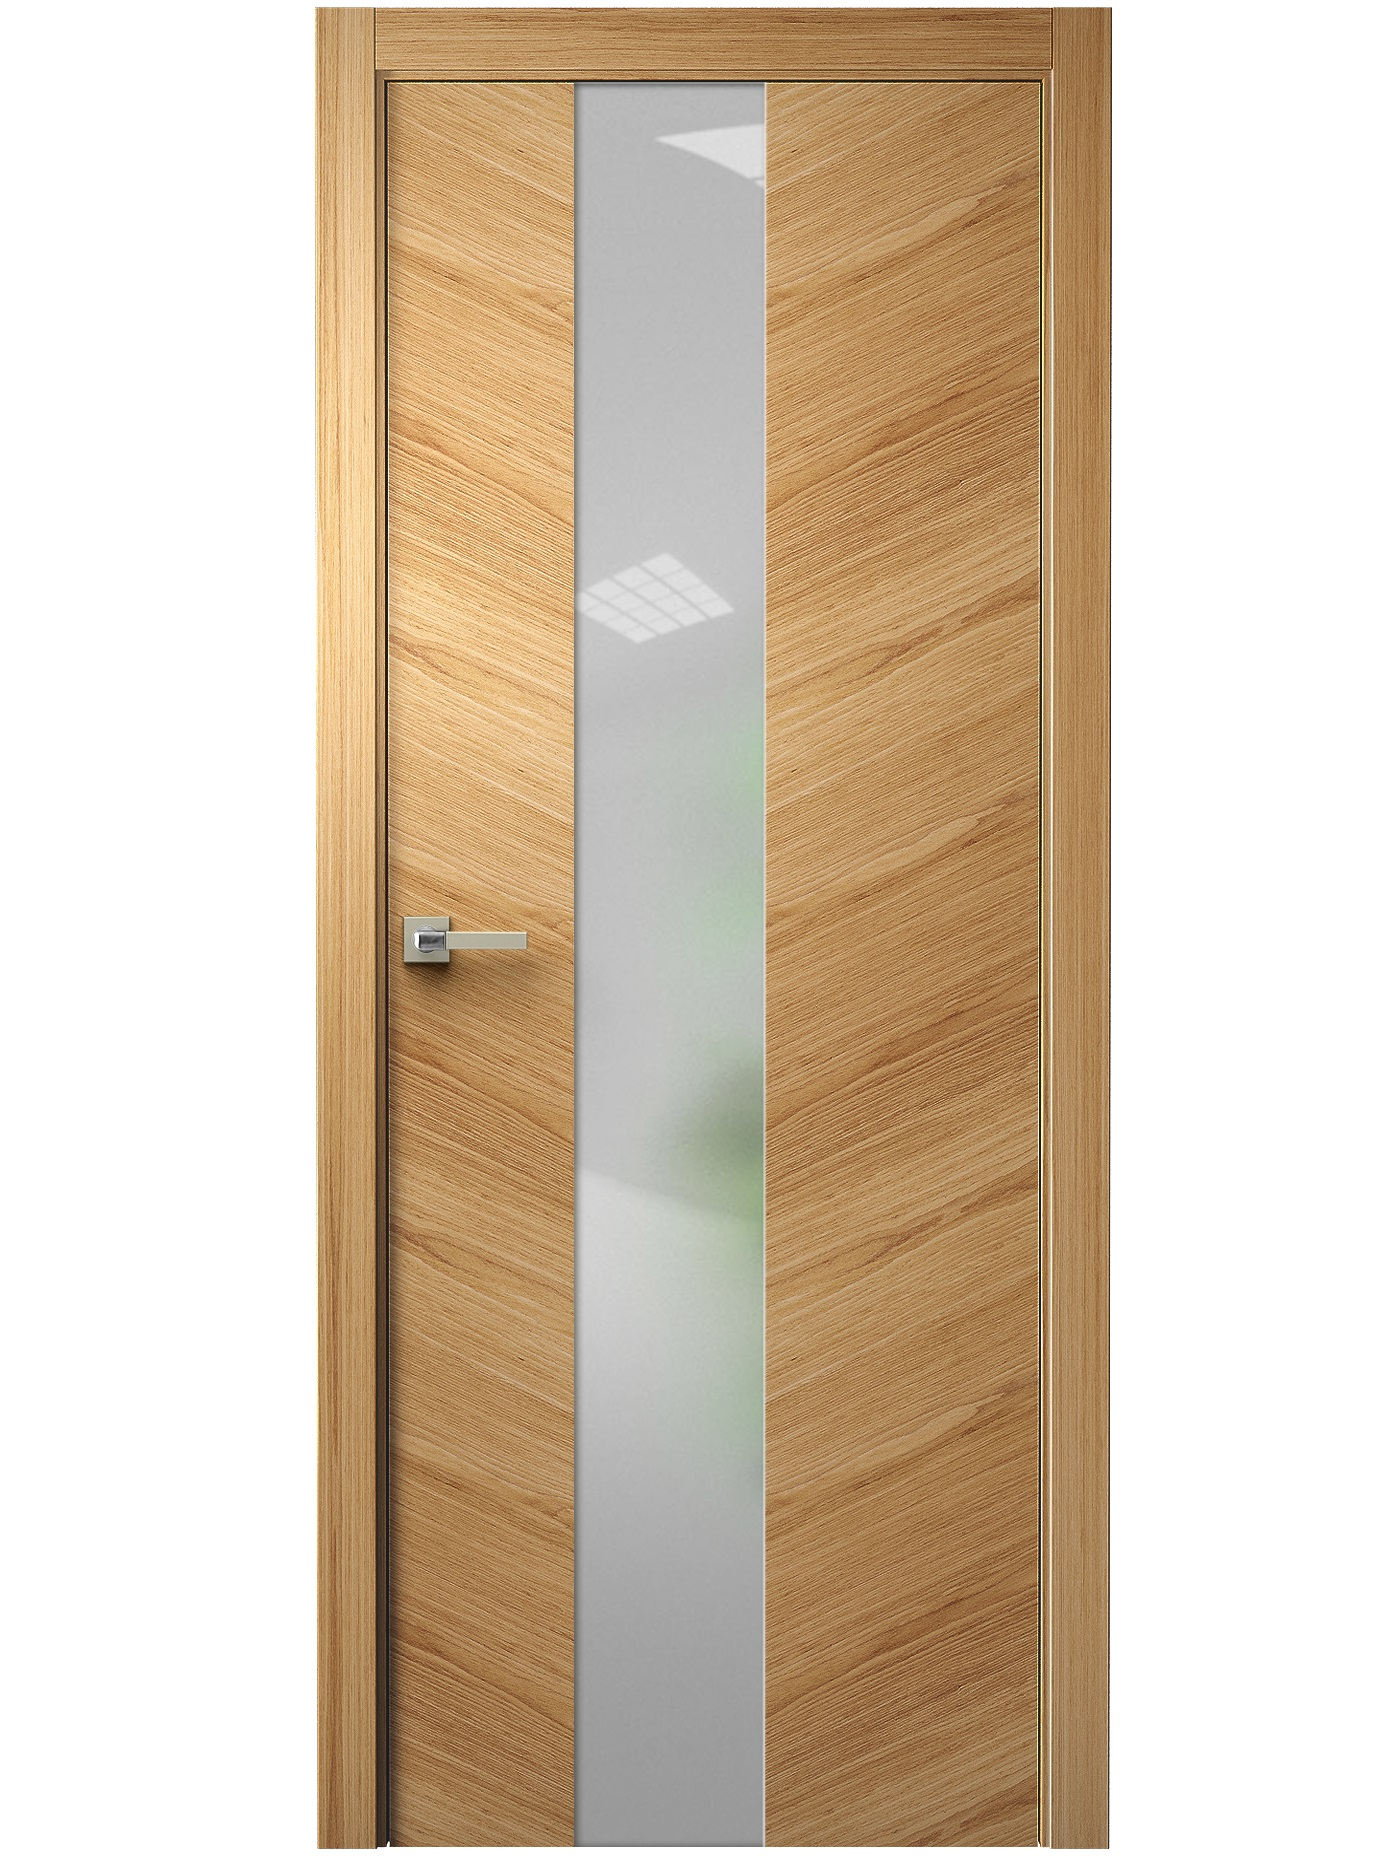 Image Tera V Vetro Interior Door Natural Oak 0